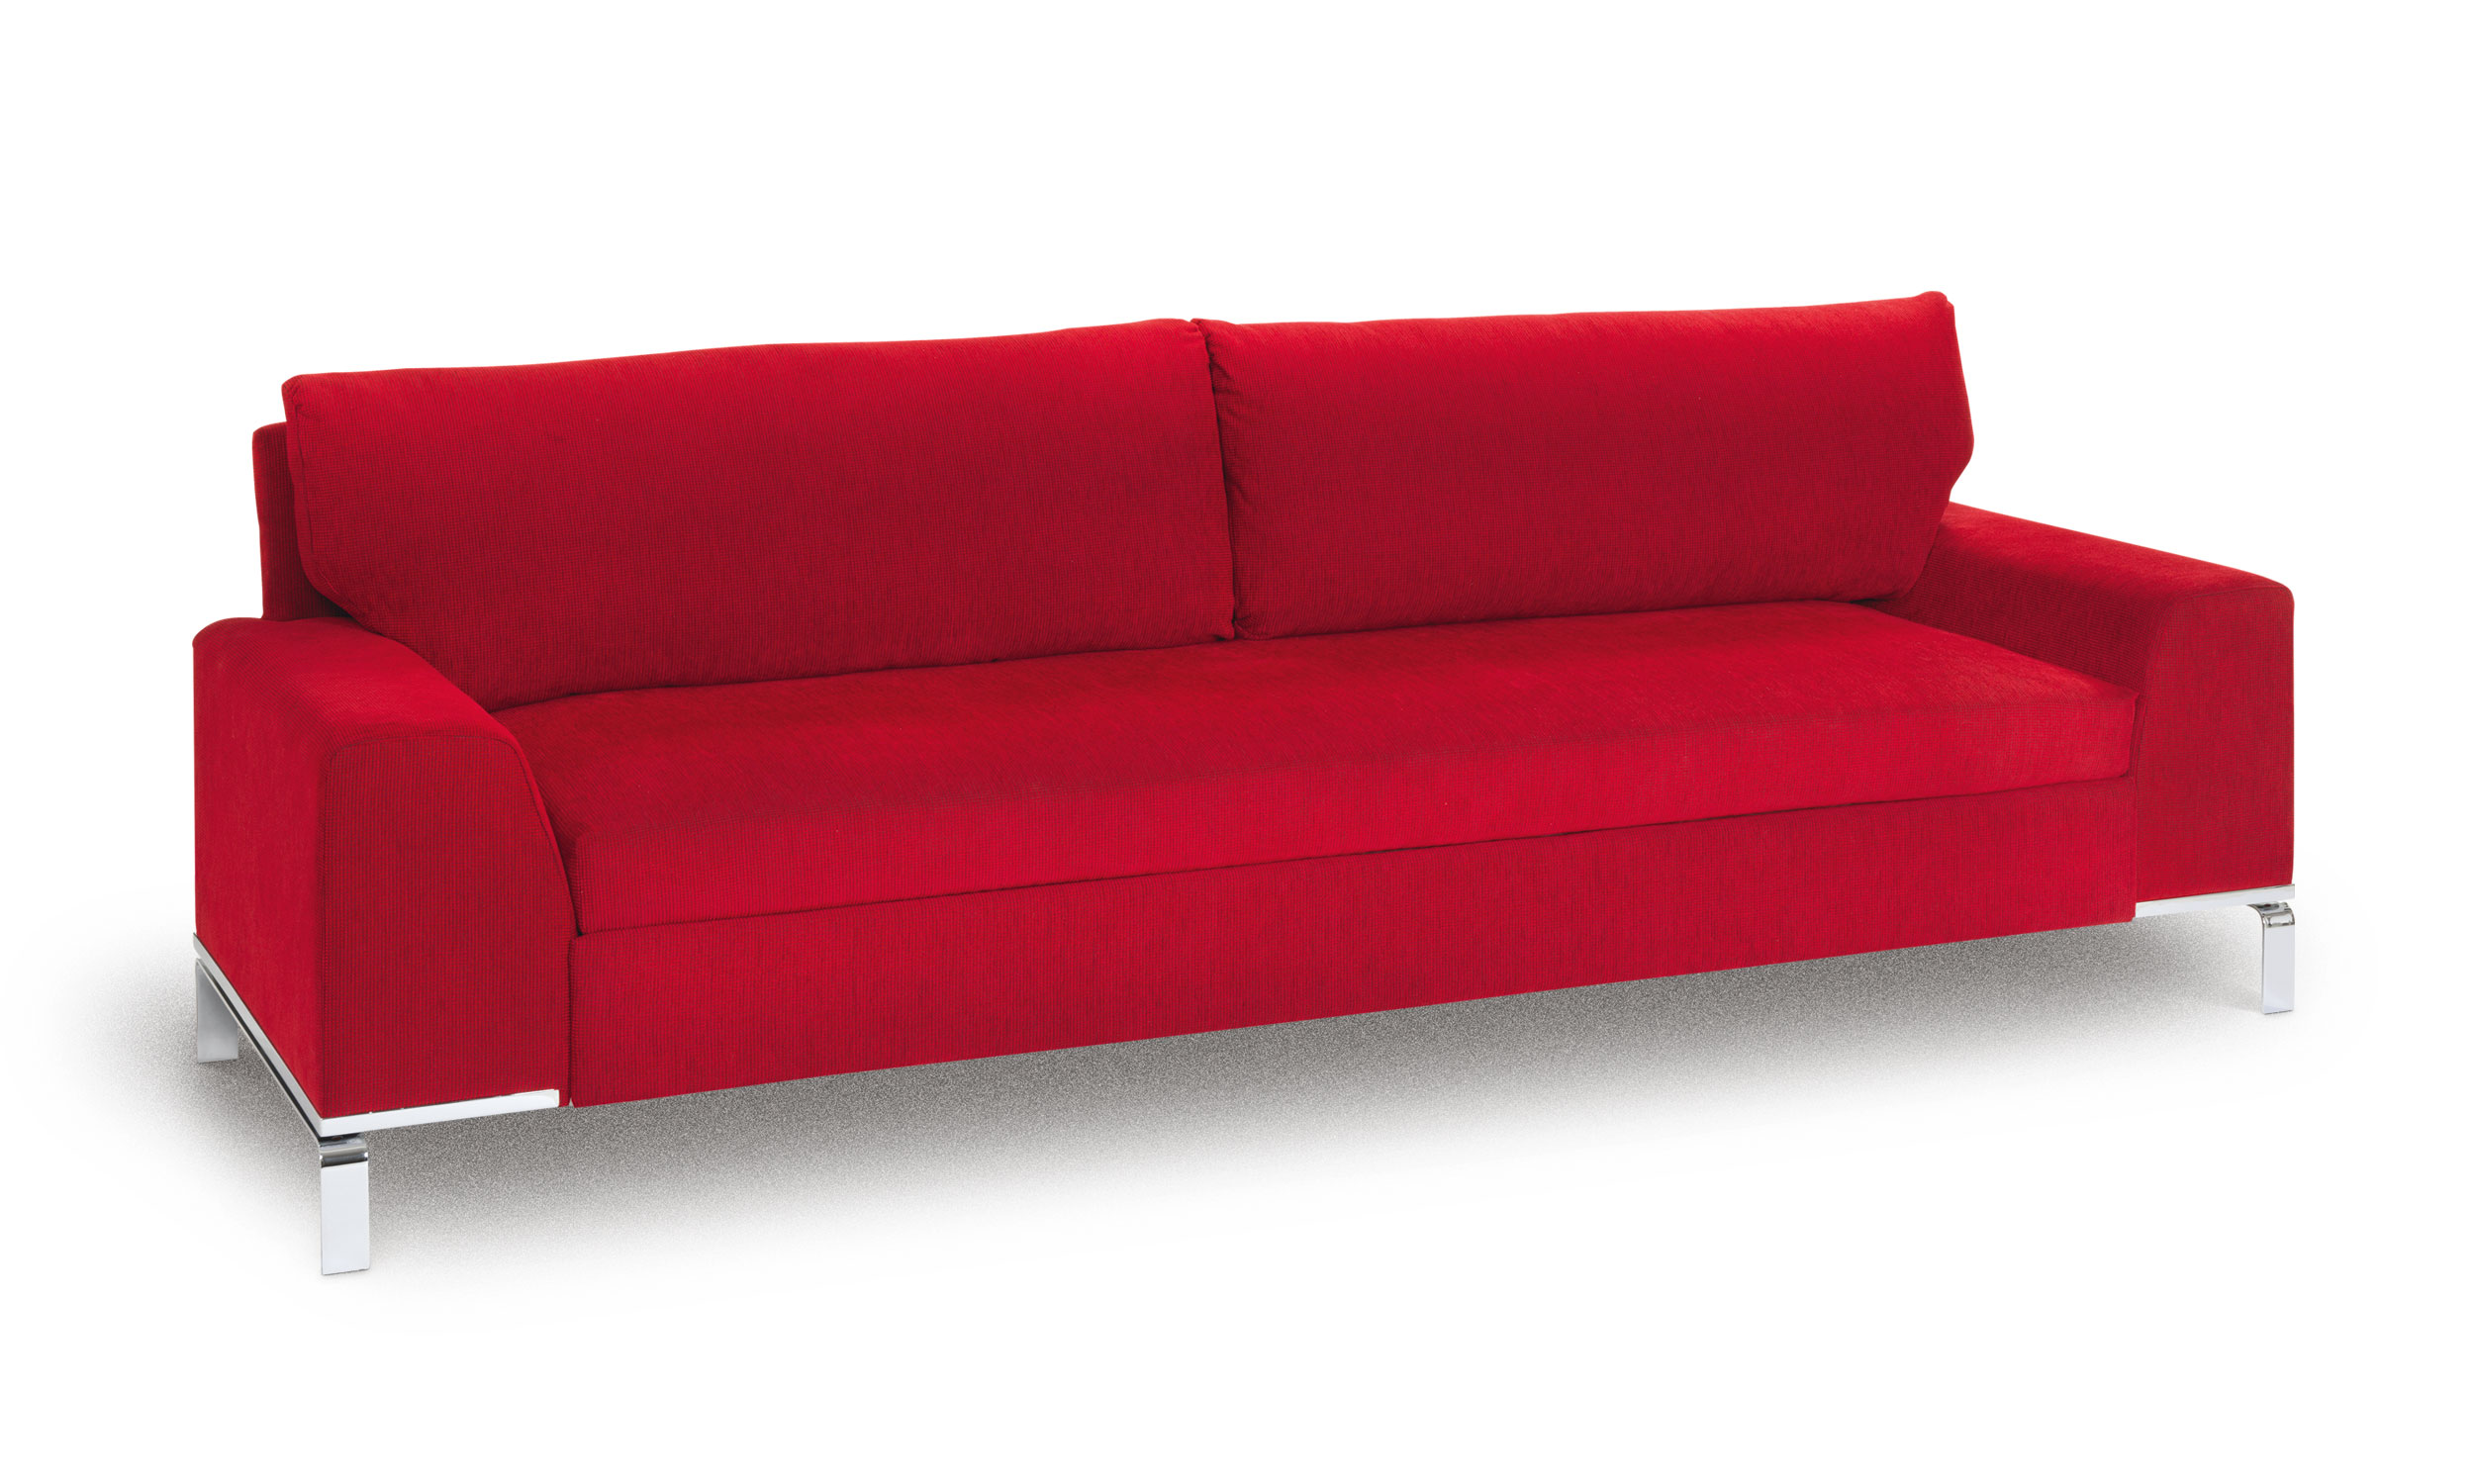 Bettsofa BED for LIVING Divan